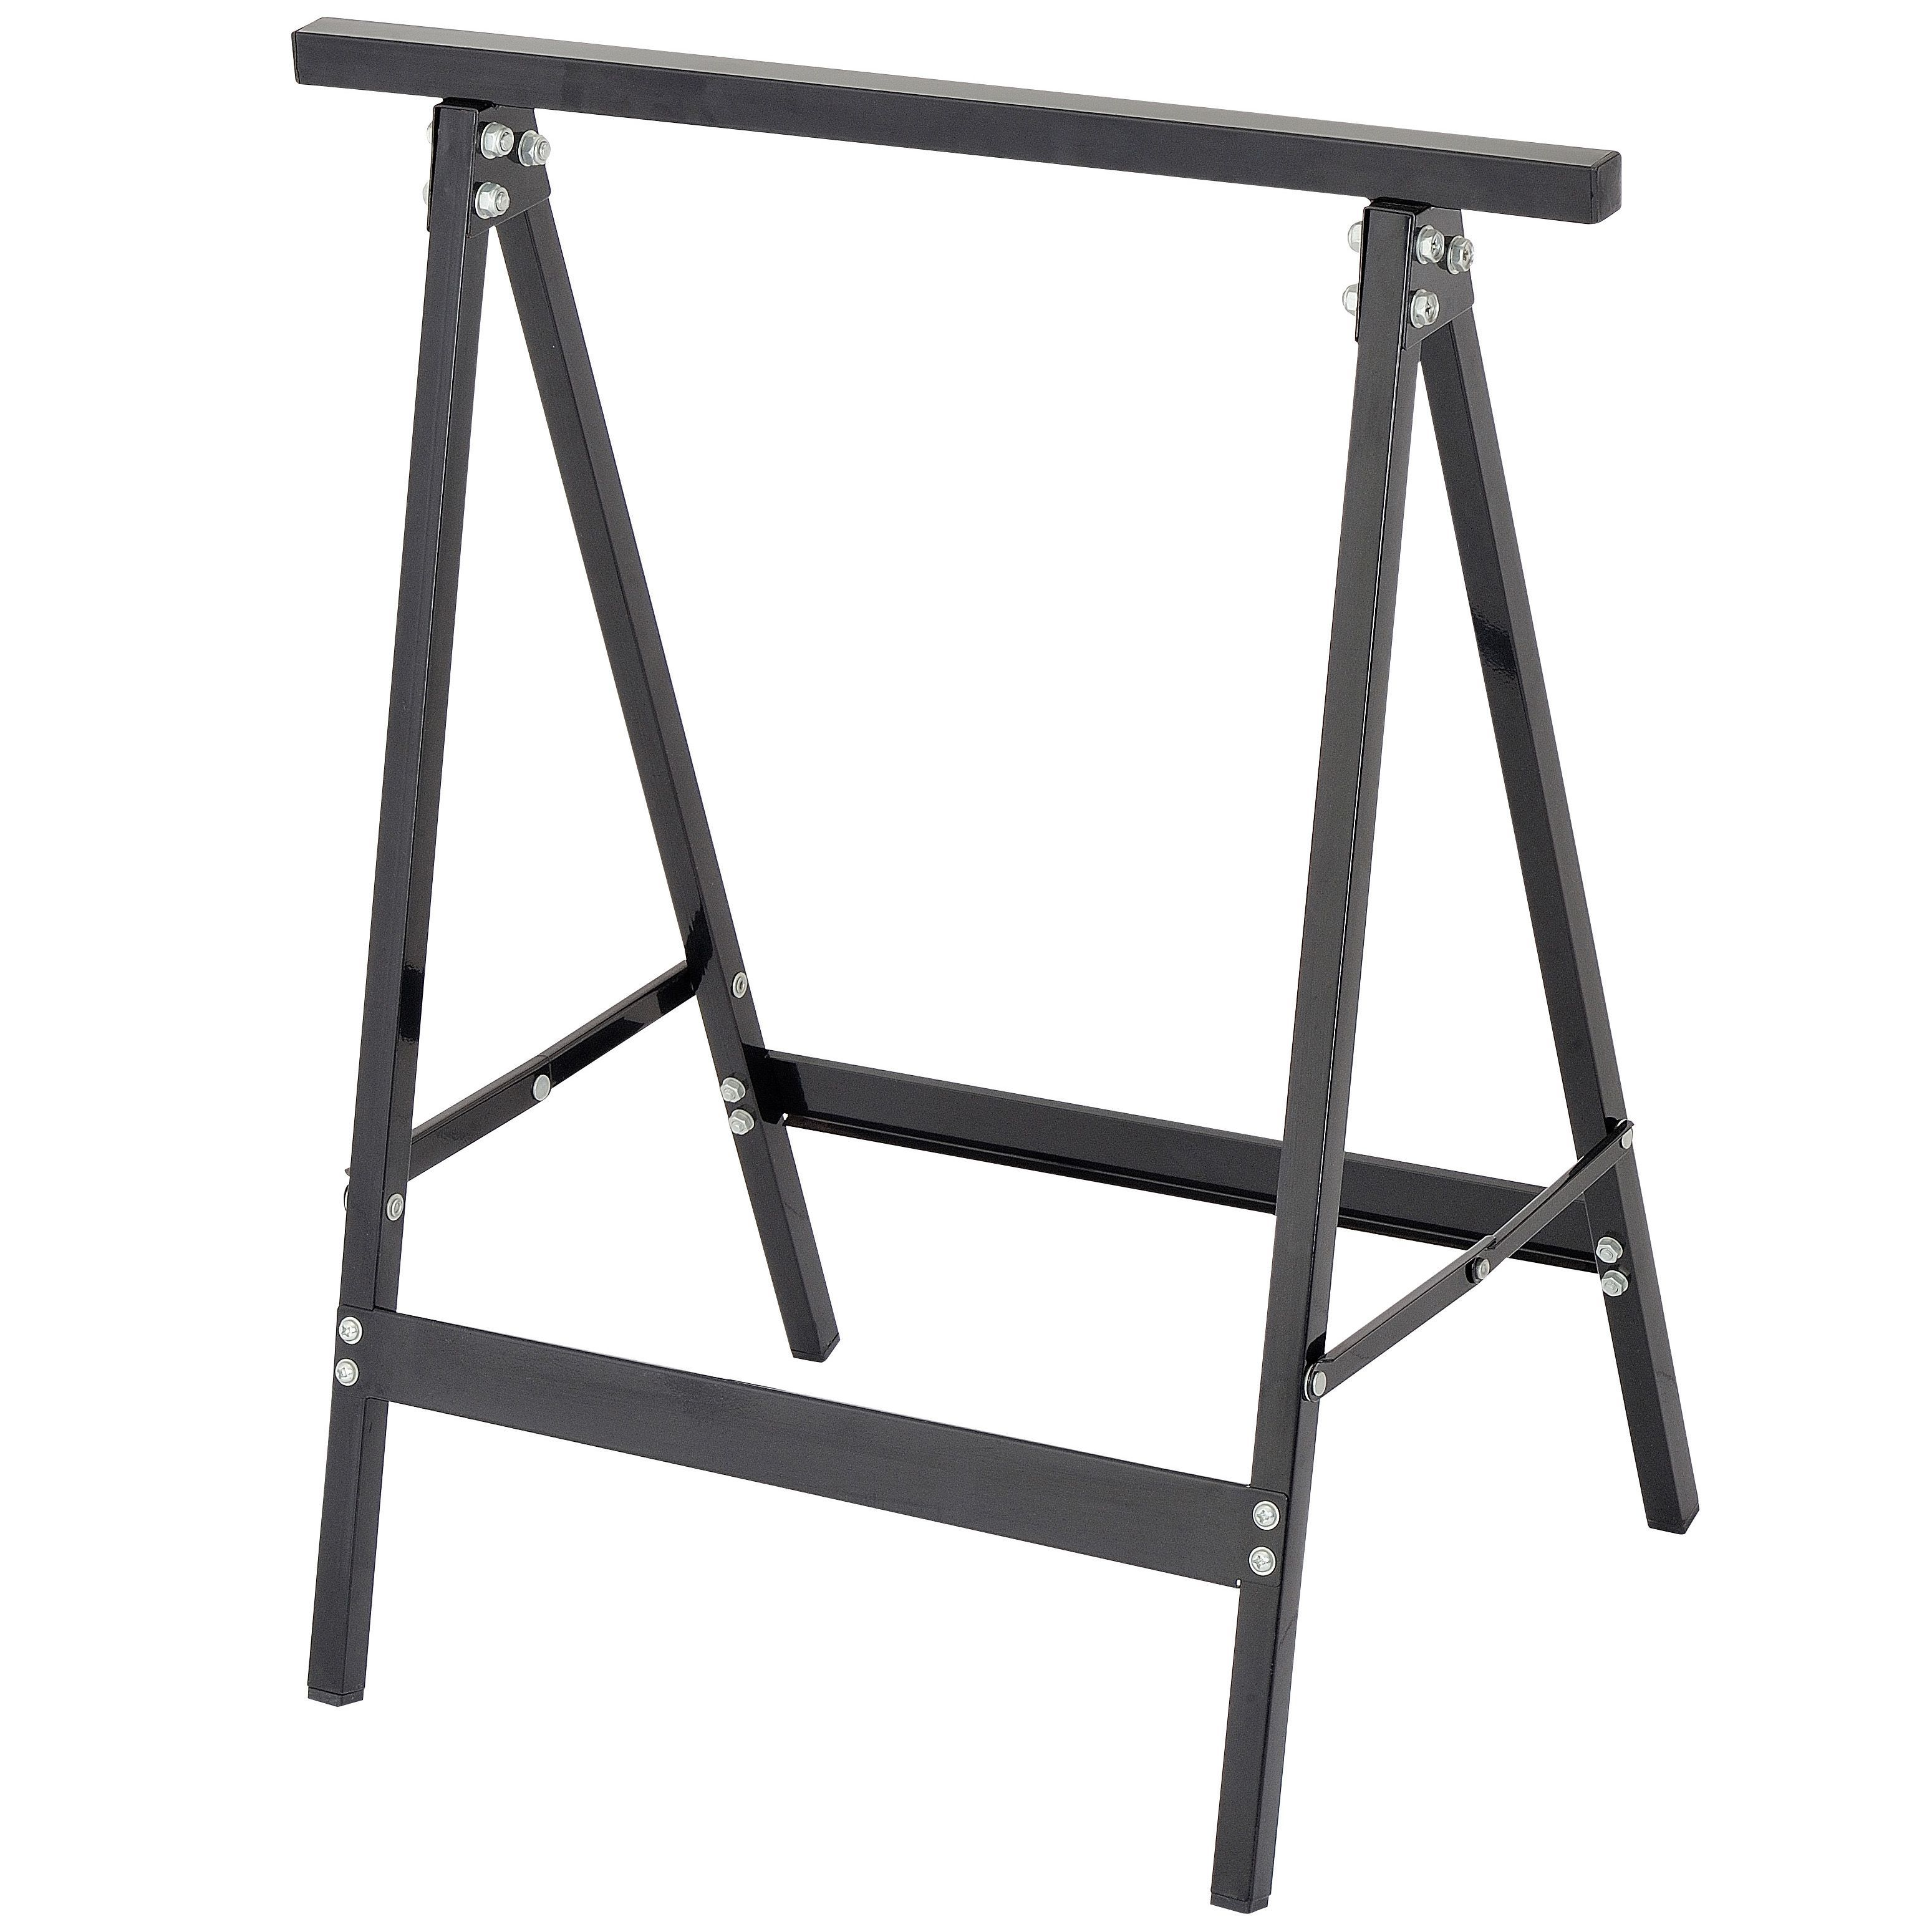 Furniture Legs B And Q mac allister foldable trestle, pack of 2 | departments | diy at b&q